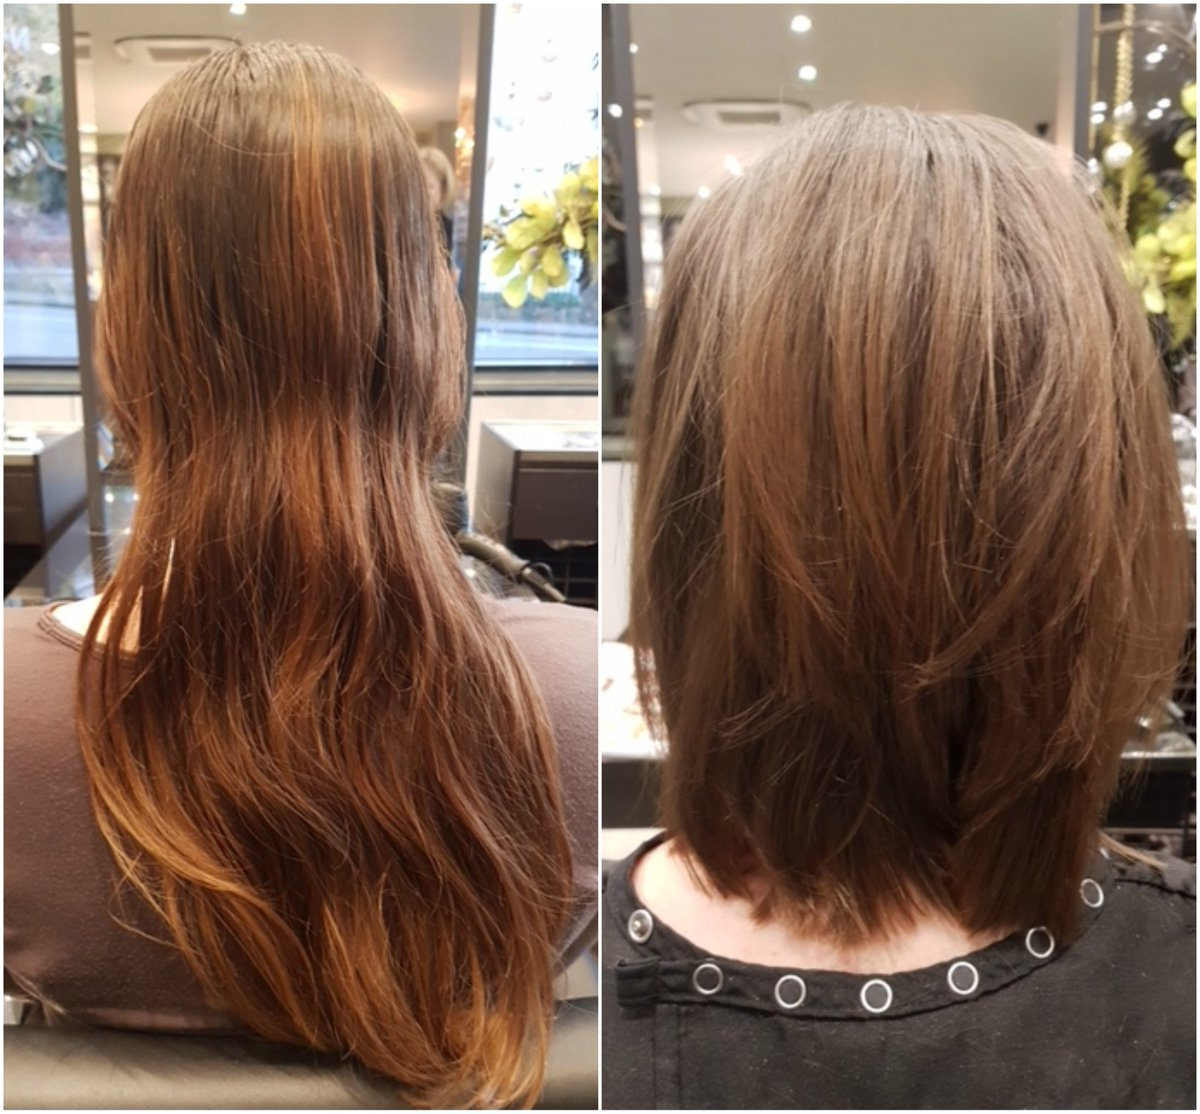 Julia Lampard Salon On Twitter Before And After Hair Cut From Long